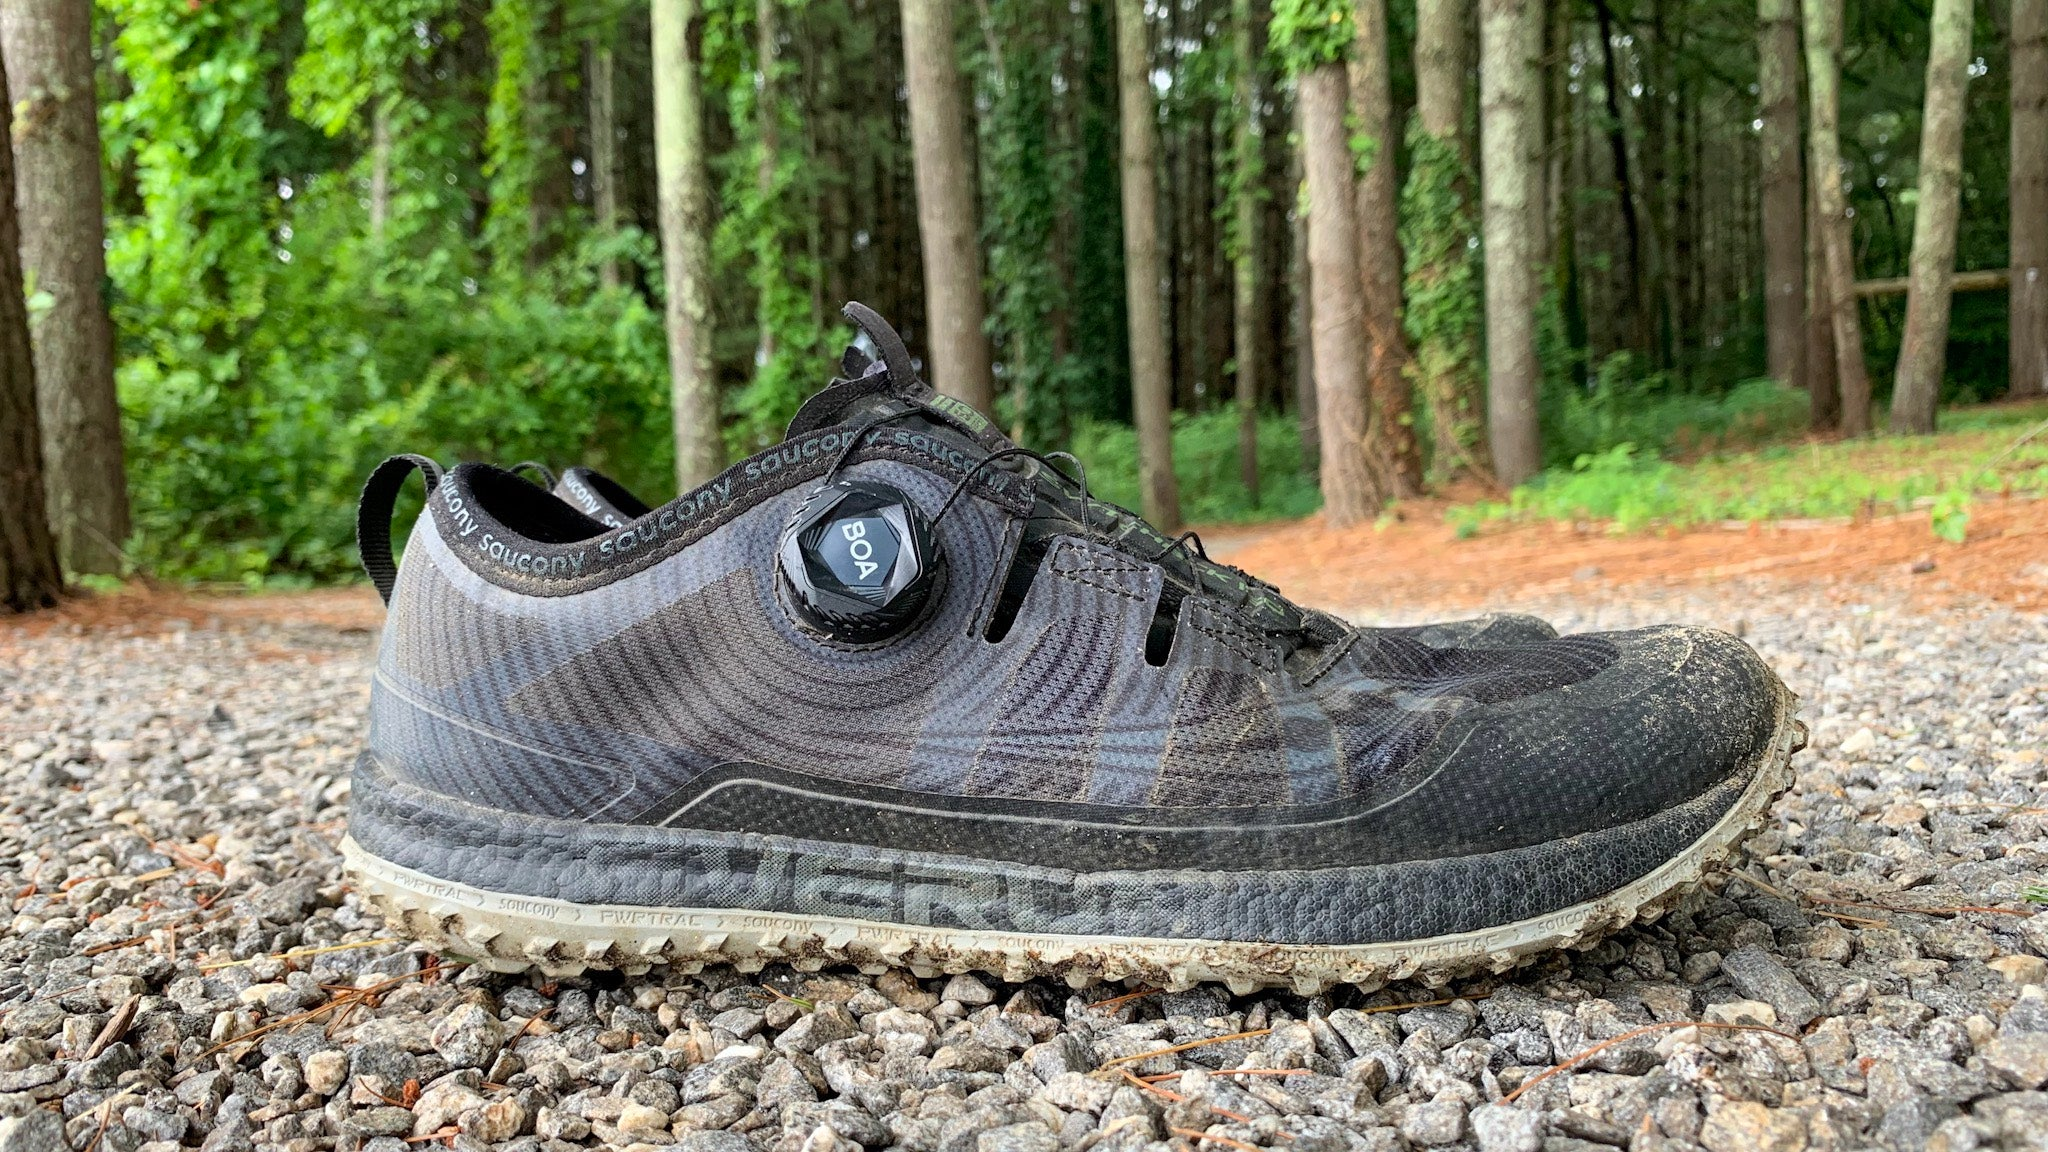 Saucony Switchback ISO trail shoe with Boa lacing